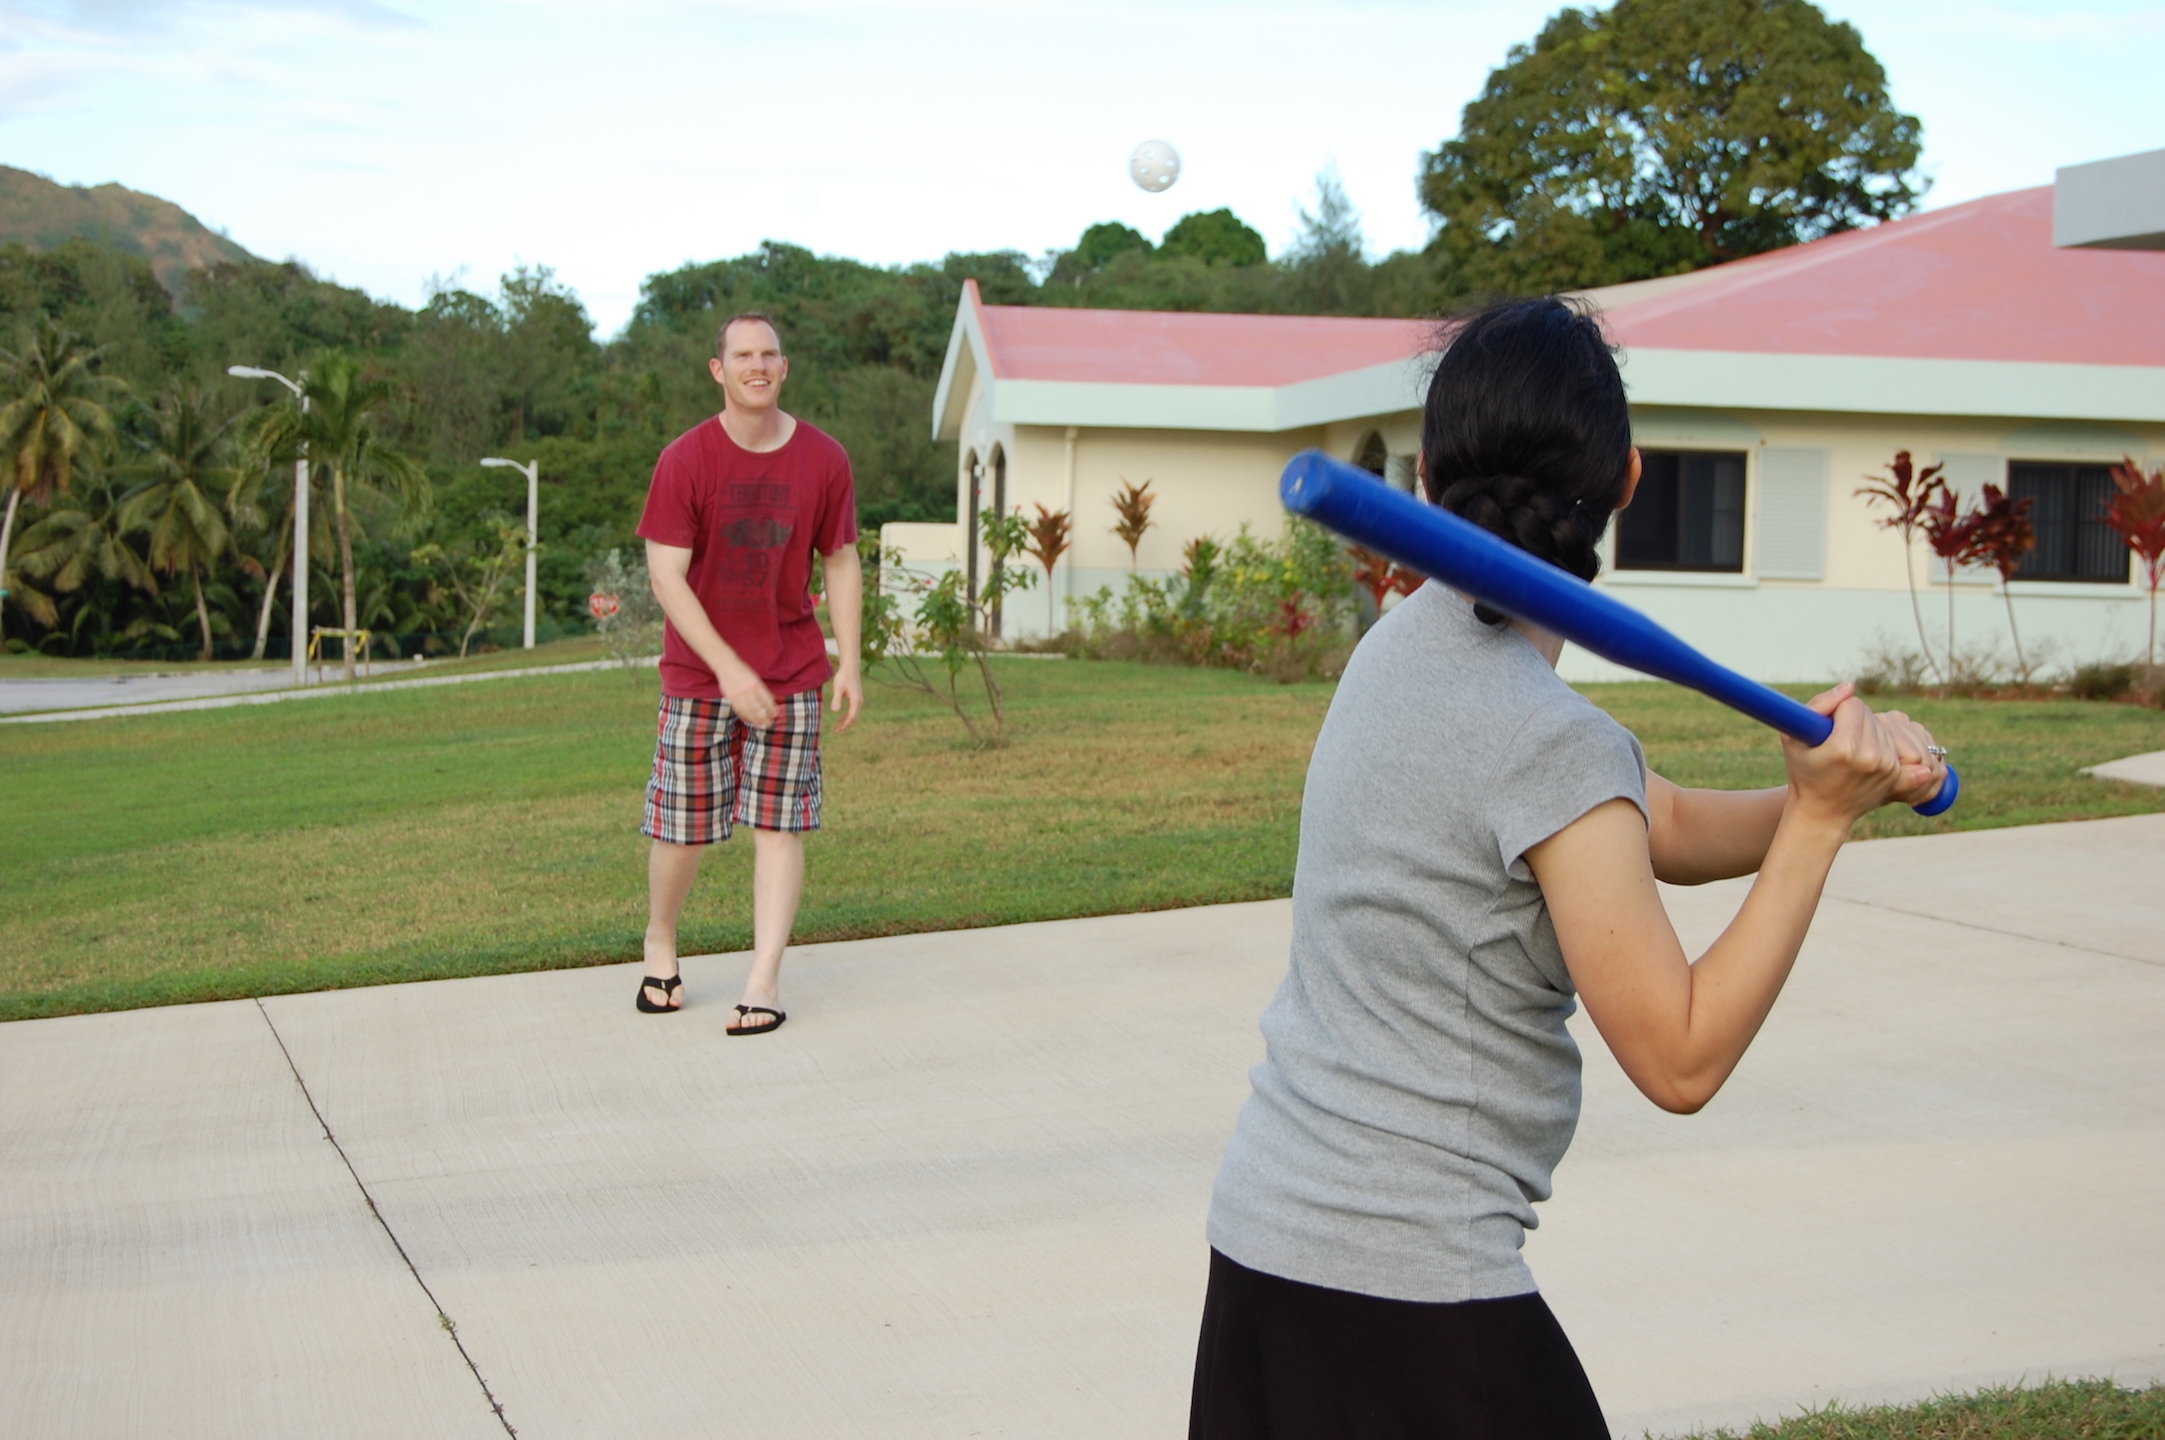 Tim and Franicia playing baseball together and with the children